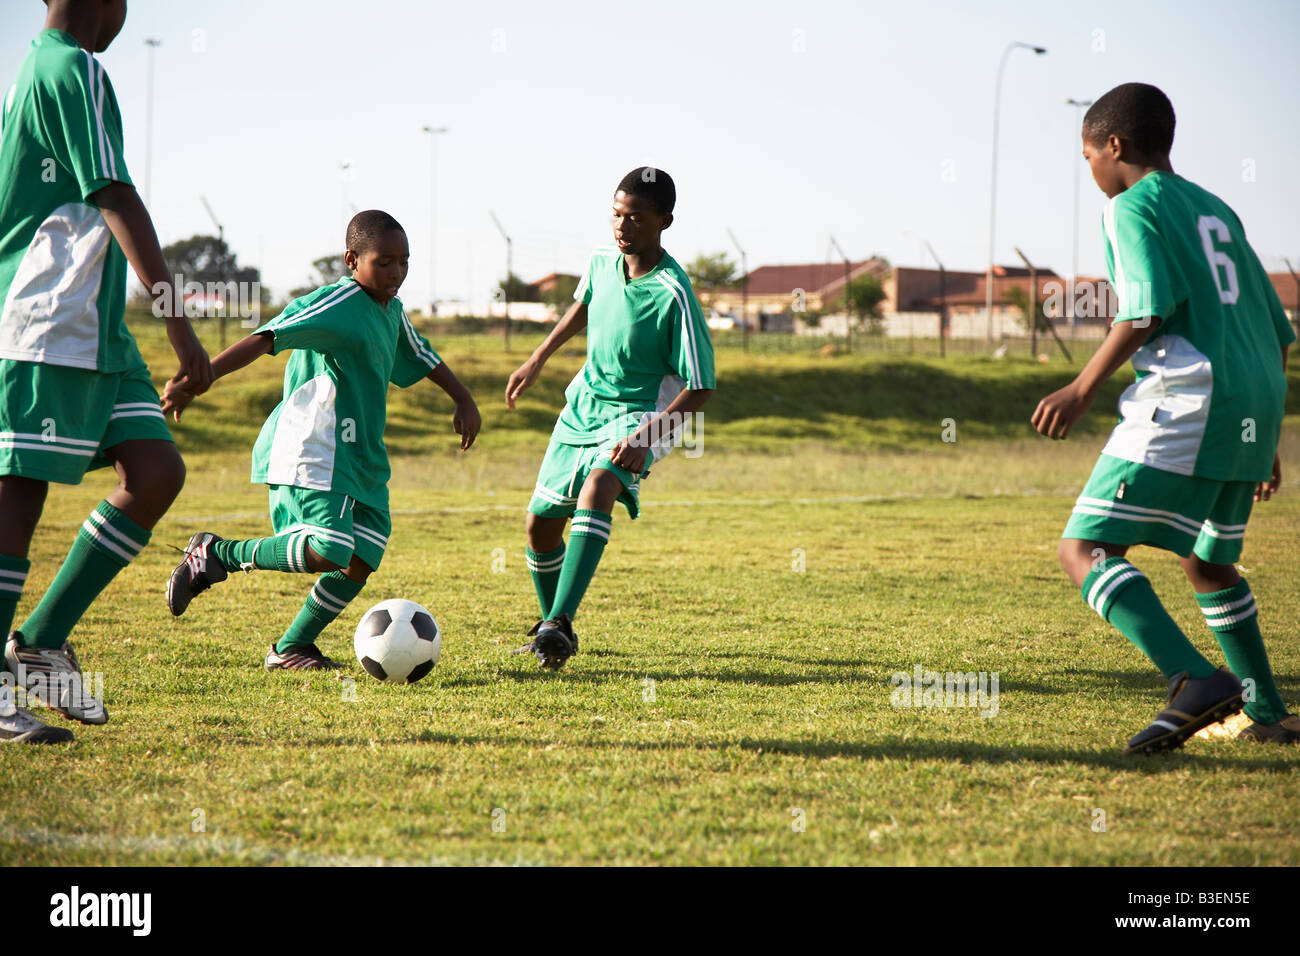 13MA-035 © Monkeyapple  aFRIKA Collection  Great Stock !  Young team playing soccer - Stock Image